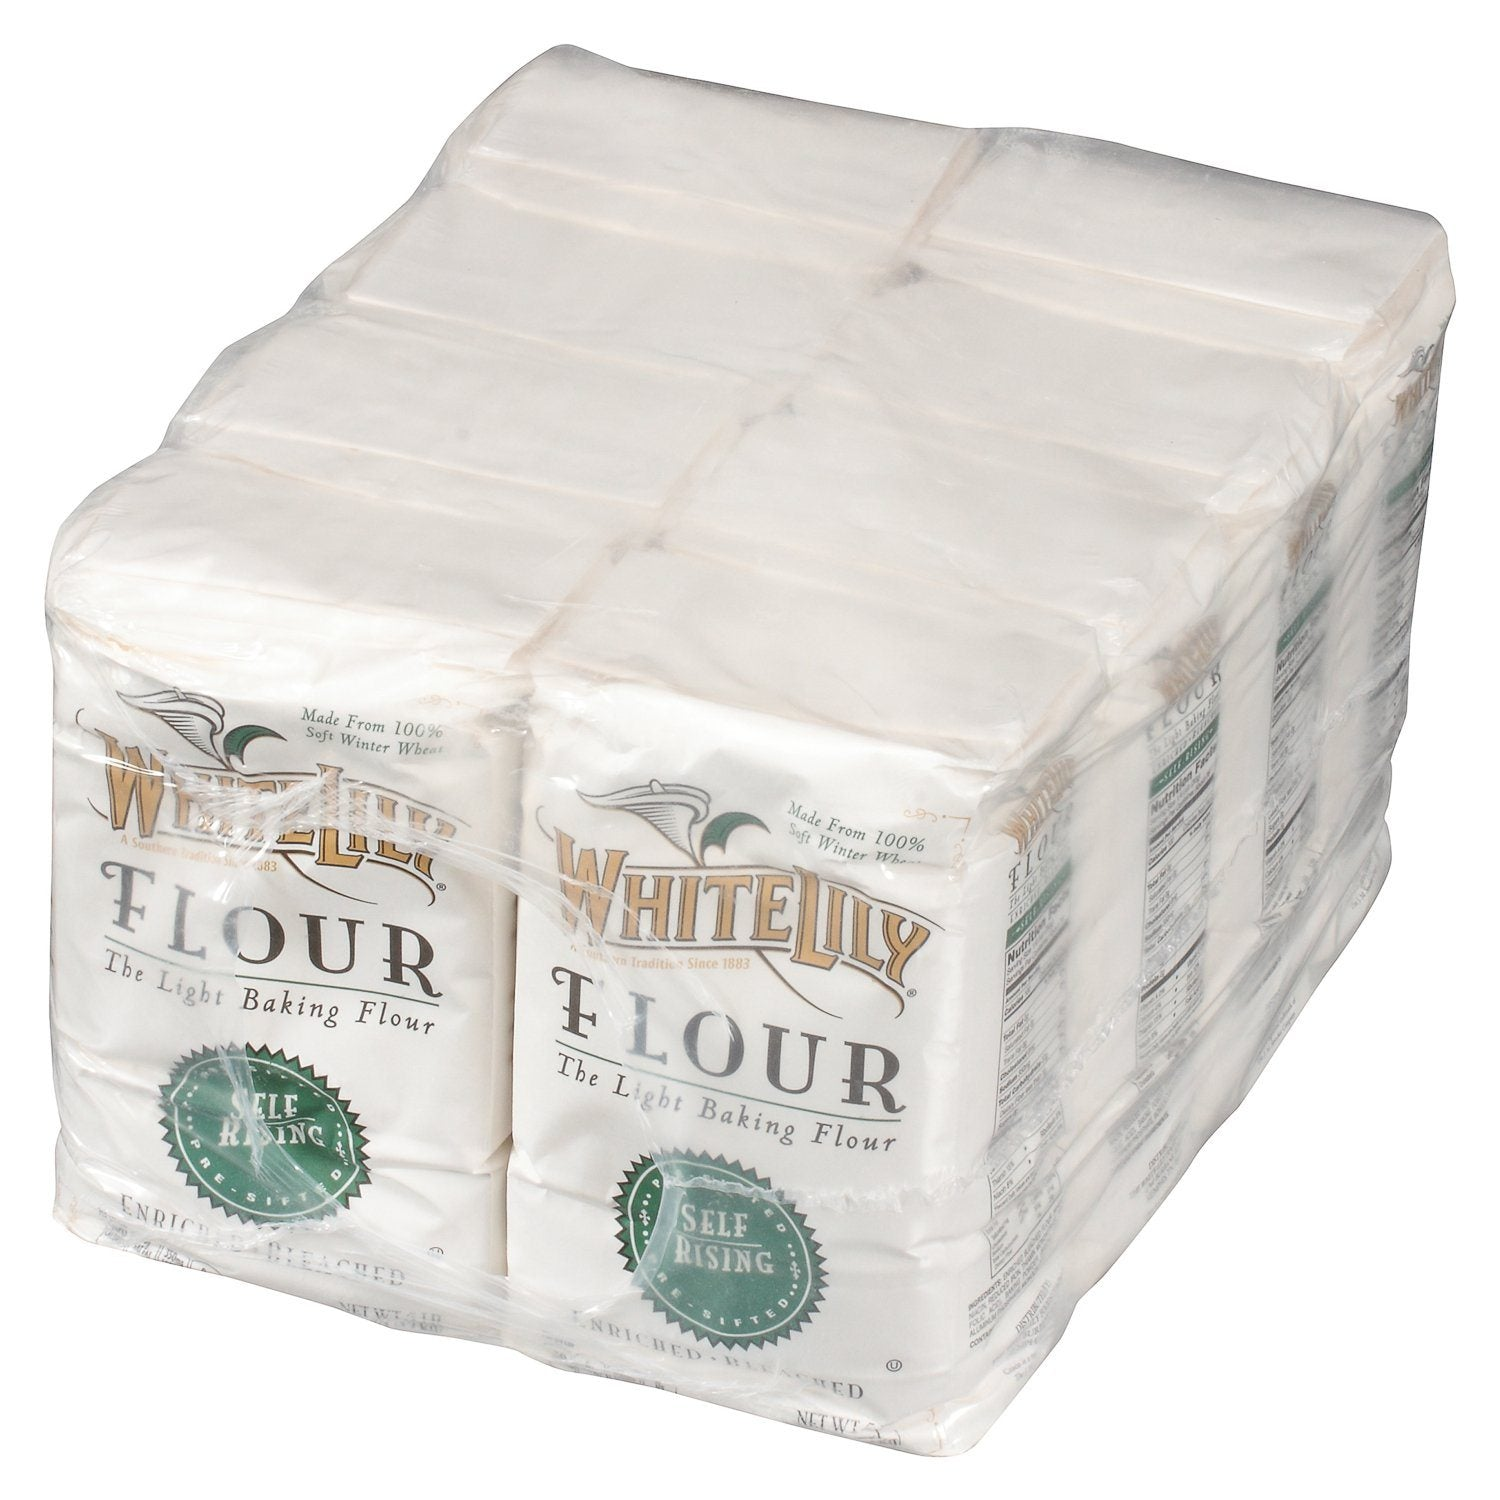 White Lily Self Rising Bleached Flour White Lily 5 Lb-8 Count